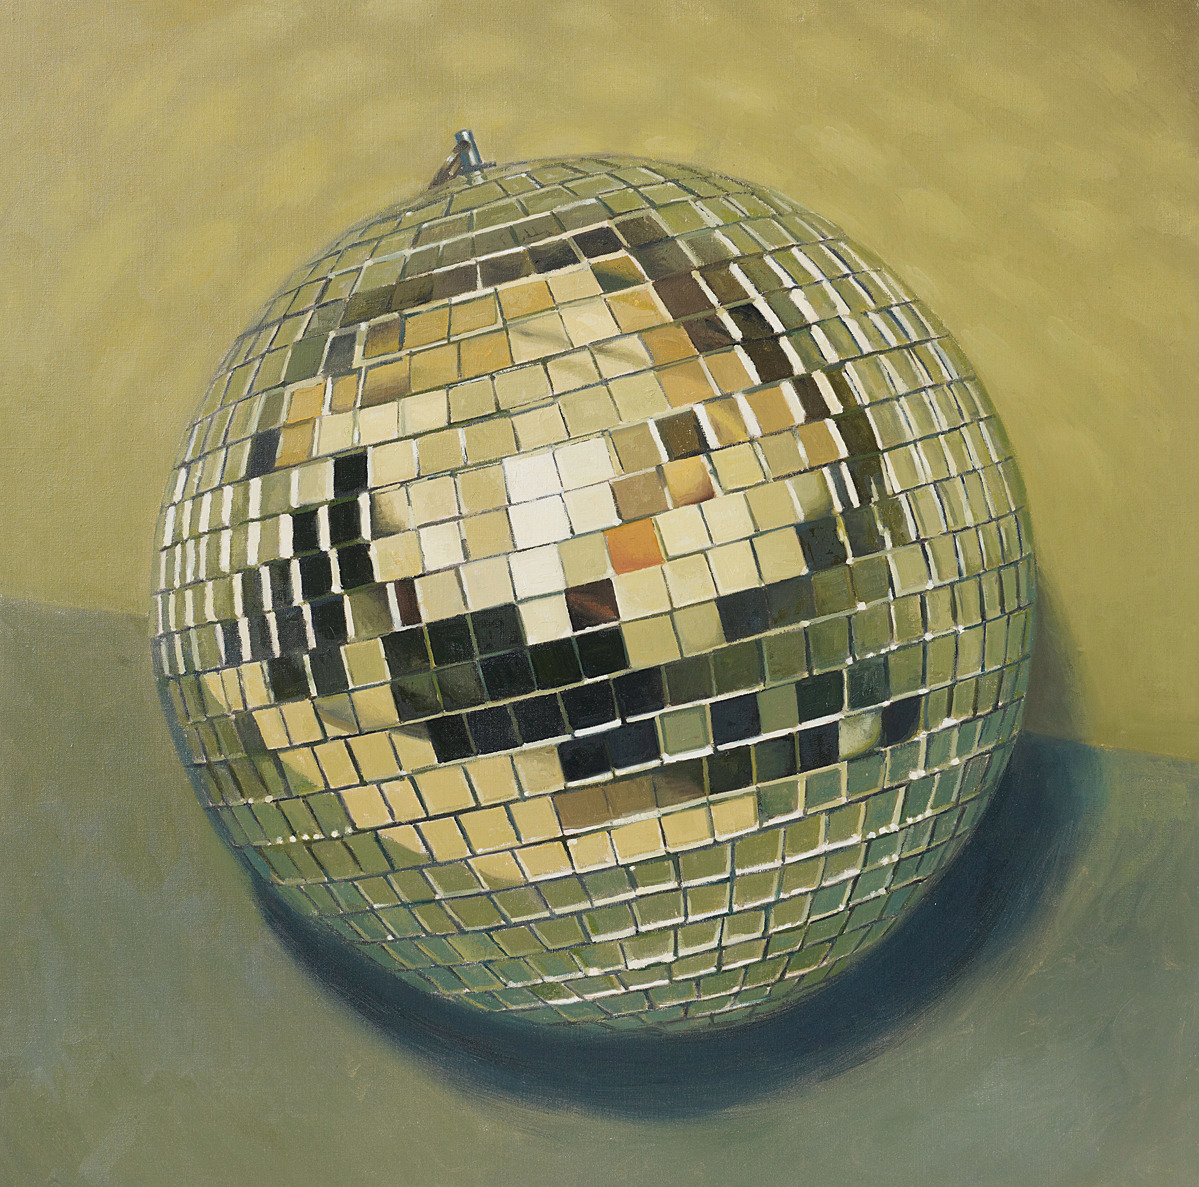 Shiny Disco Balls | Who Da Funk  PETER ROSTOVSKY | Disco Ball, 2001 | oil on canvas.  Sold for £2,000 at Under the Influence, 11 April 2013, London.